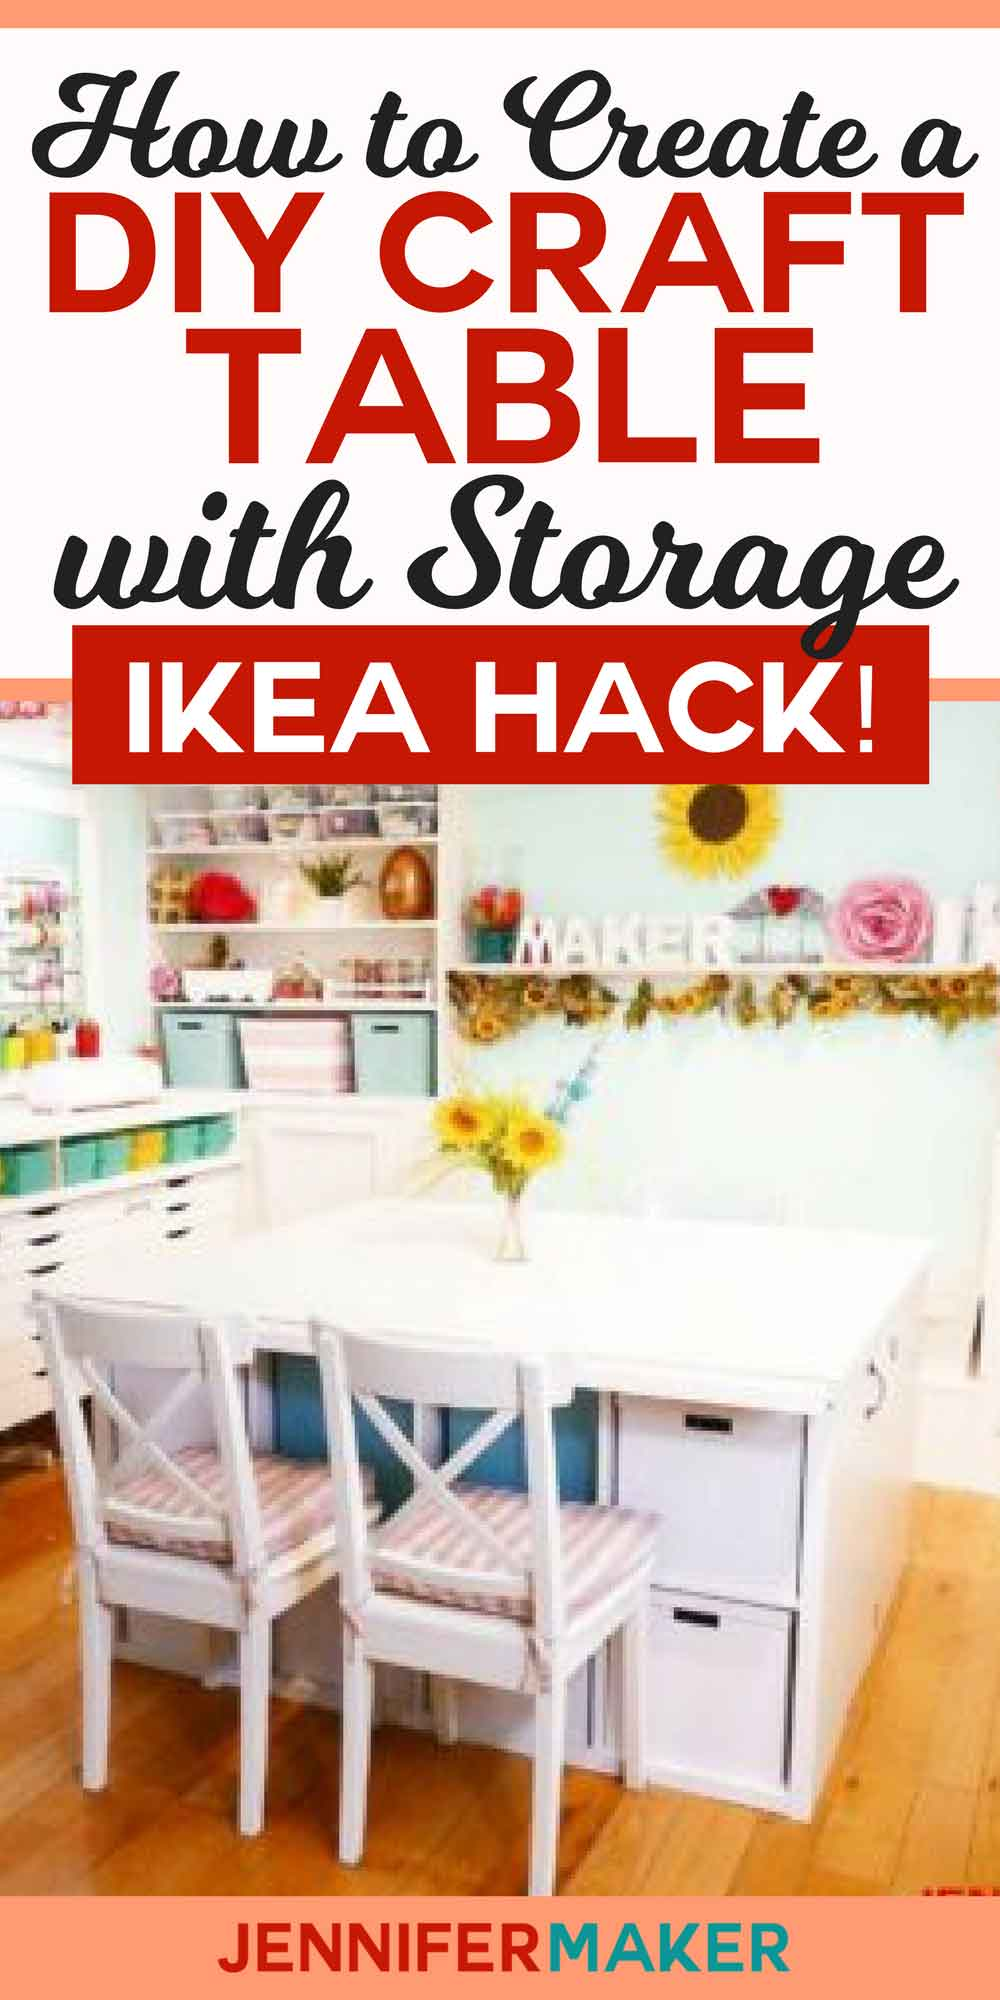 DIY Craft Table with Storage for Under $300 #organization #craftroom #ikeahack